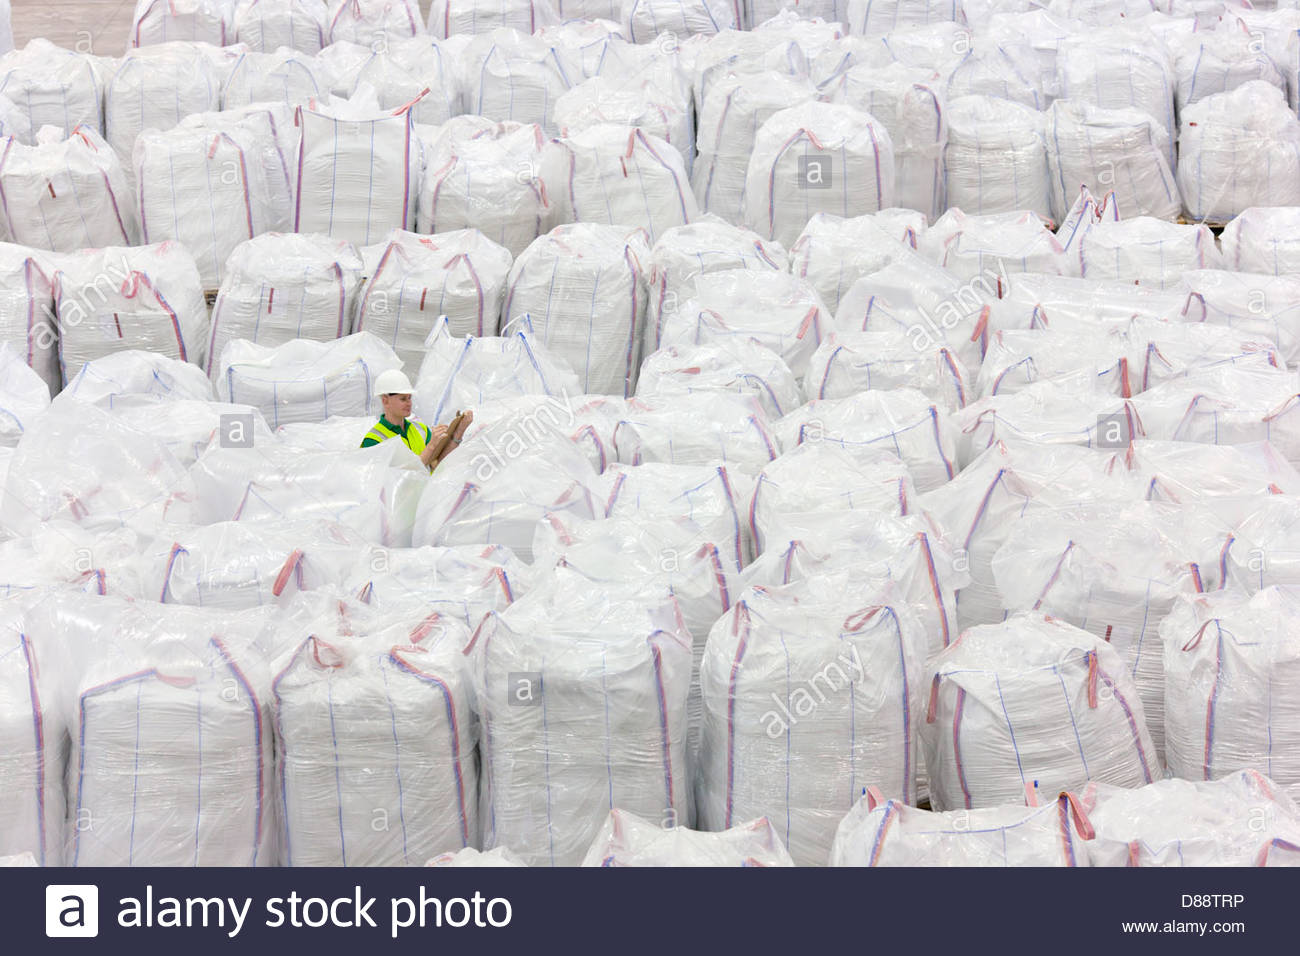 Worker among large bags of plastic pellets in warehouse - Stock Image